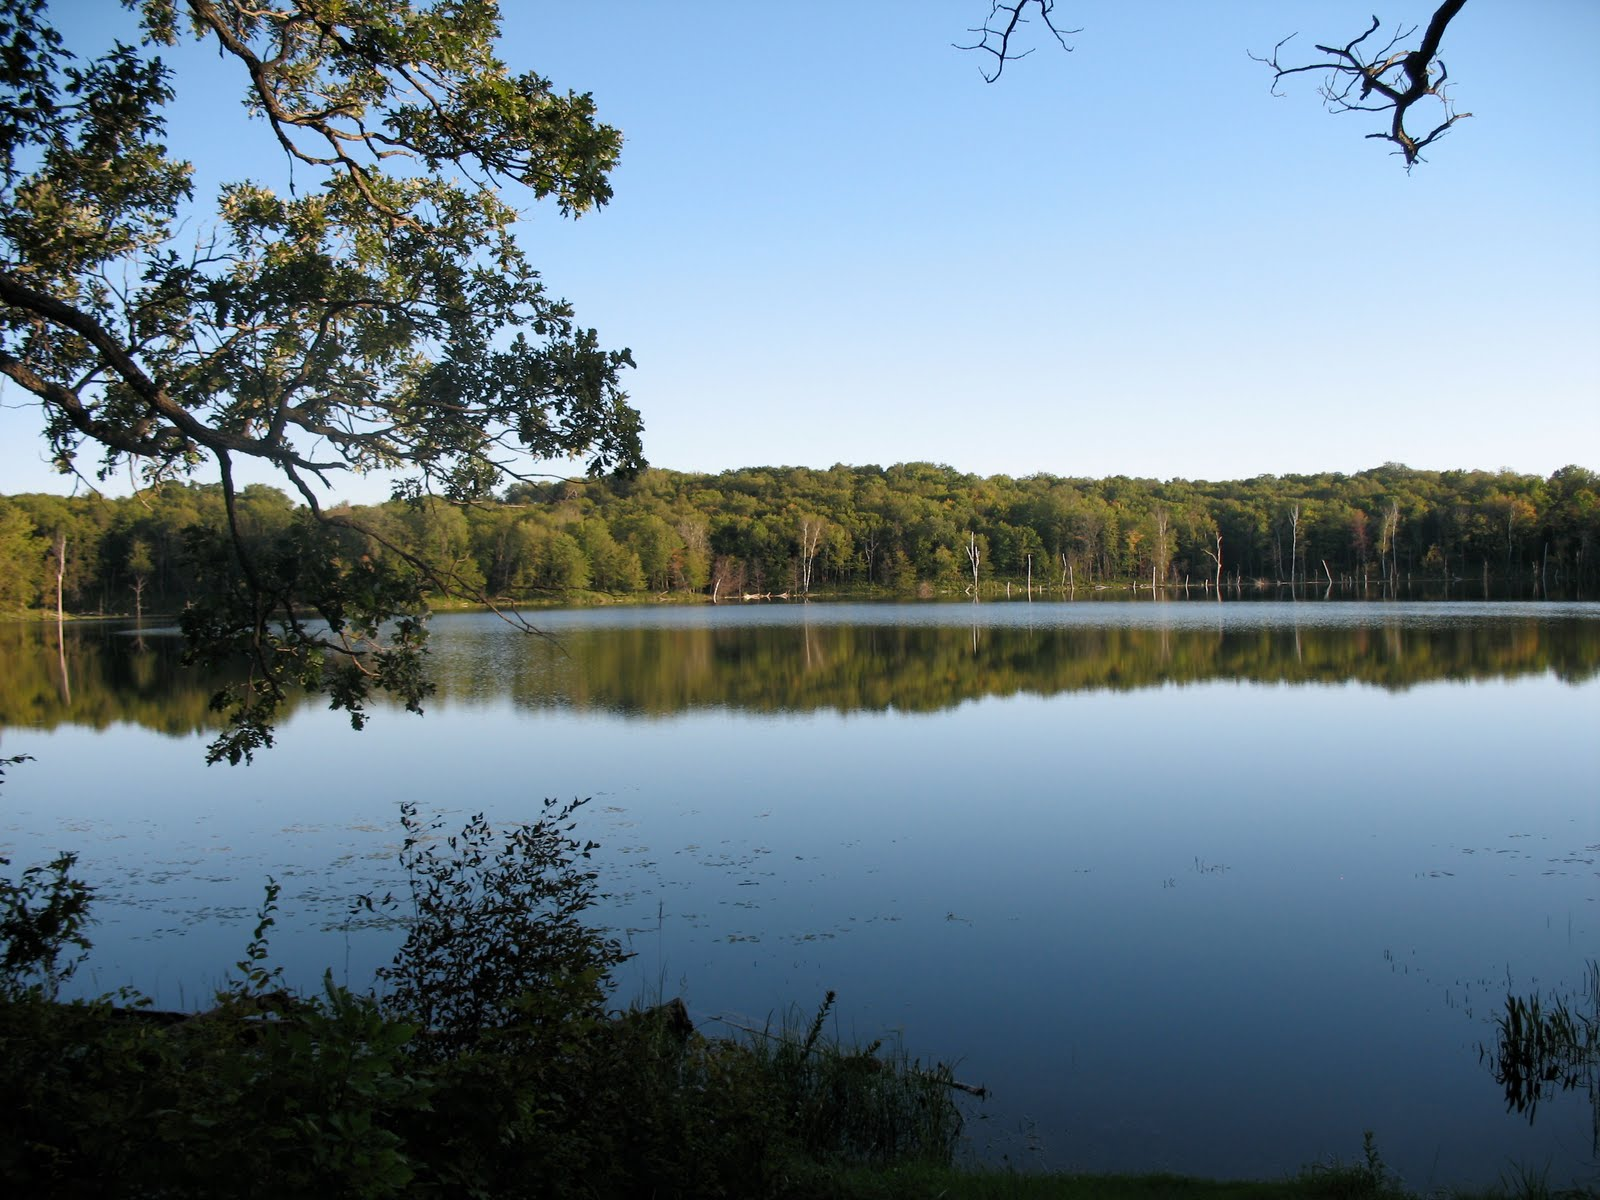 Maplewood State Park - We got into the park in plenty of time to set up cook a meal and take the kayaks out on the lake before dark